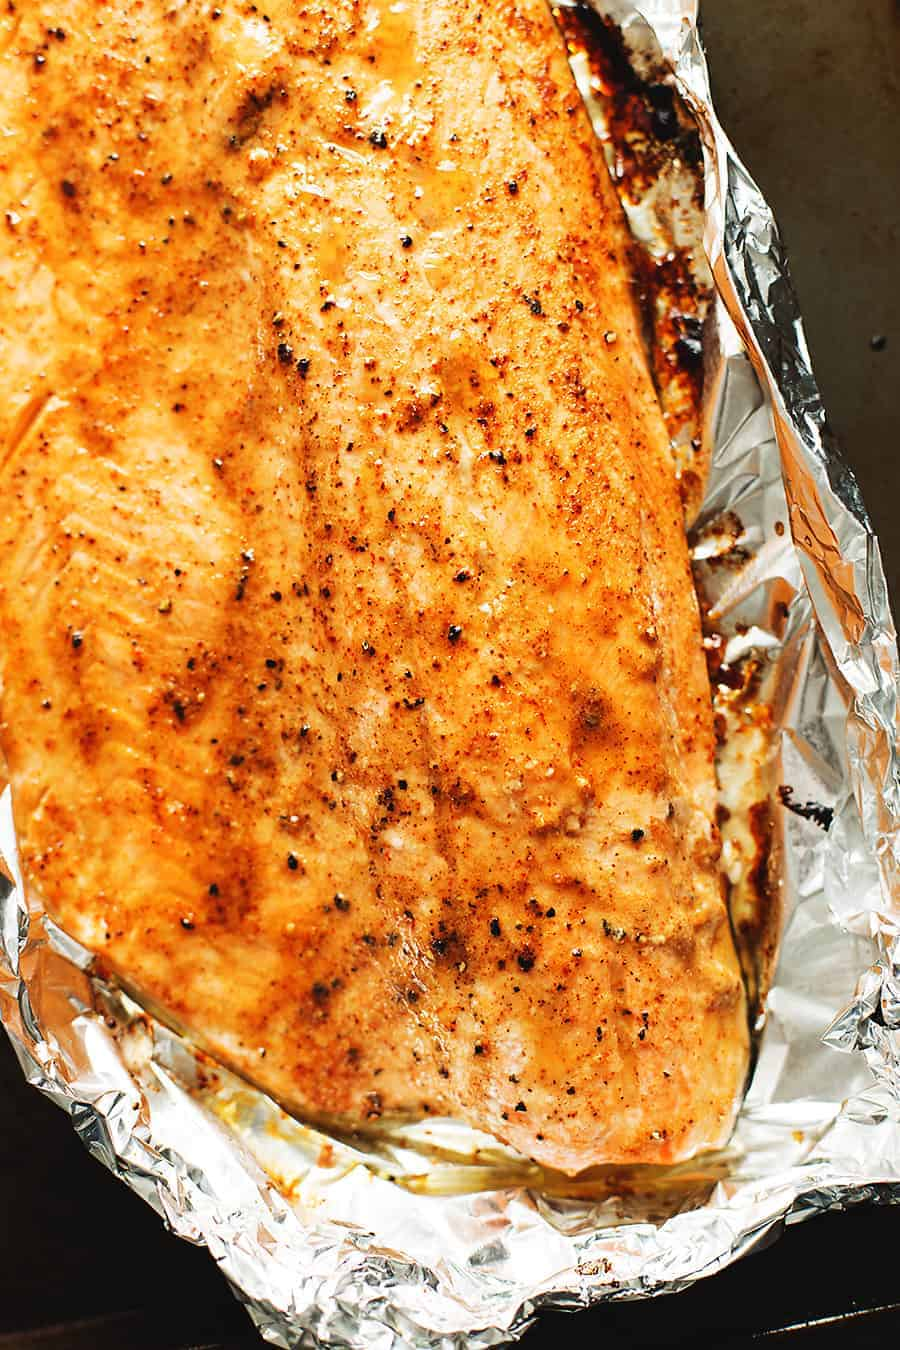 a salmon filet baked in foil